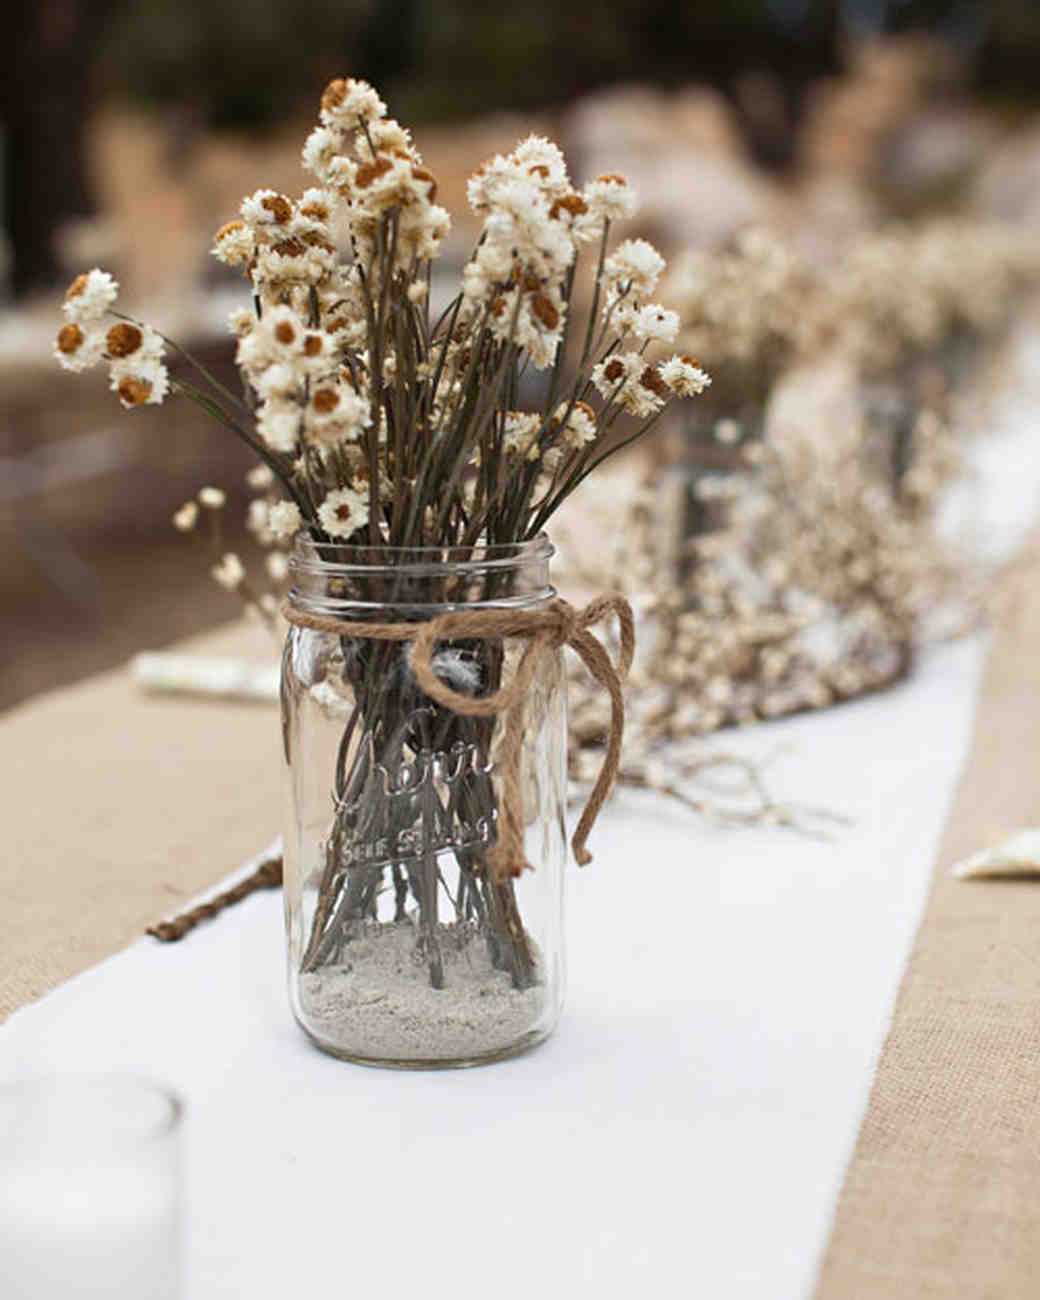 24 dried flower arrangements that are perfect for a fall wedding 24 dried flower arrangements that are perfect for a fall wedding martha stewart weddings reviewsmspy